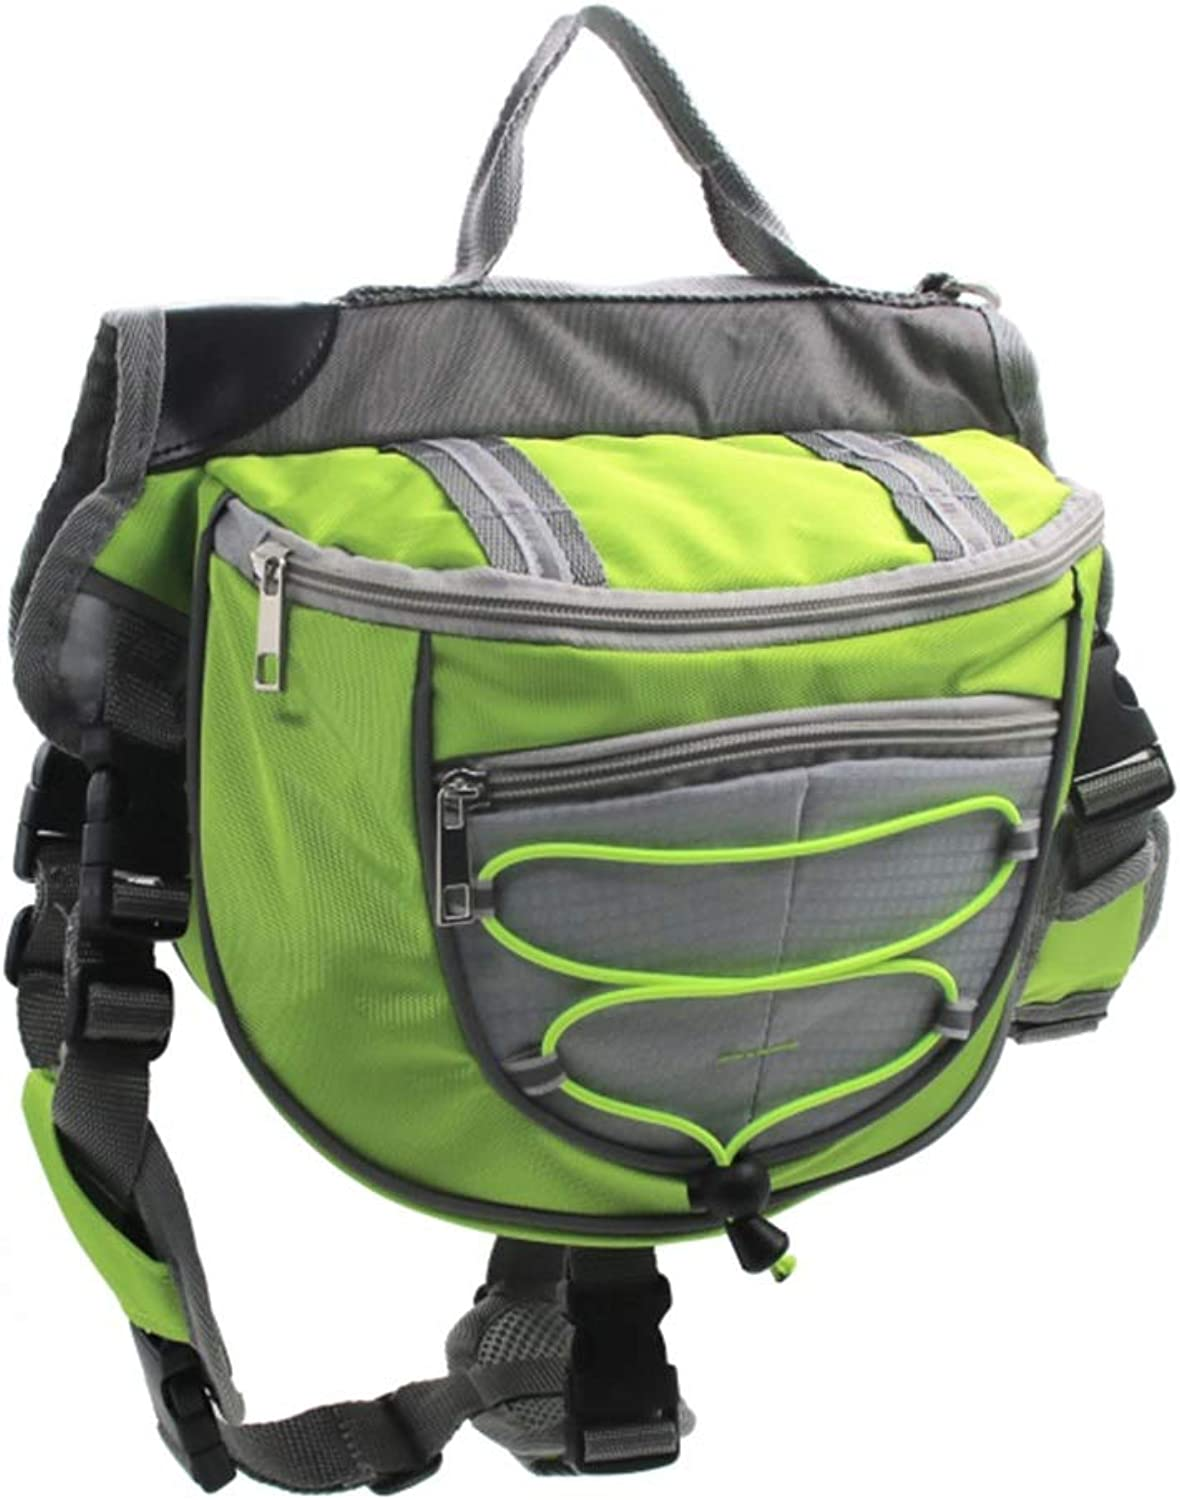 Dog Backpack, Pet Adjustable Saddle Bag Harness Carrier, for Traveling Hiking Camping, for Medium and Large Dogs (color   Green, Size   S)